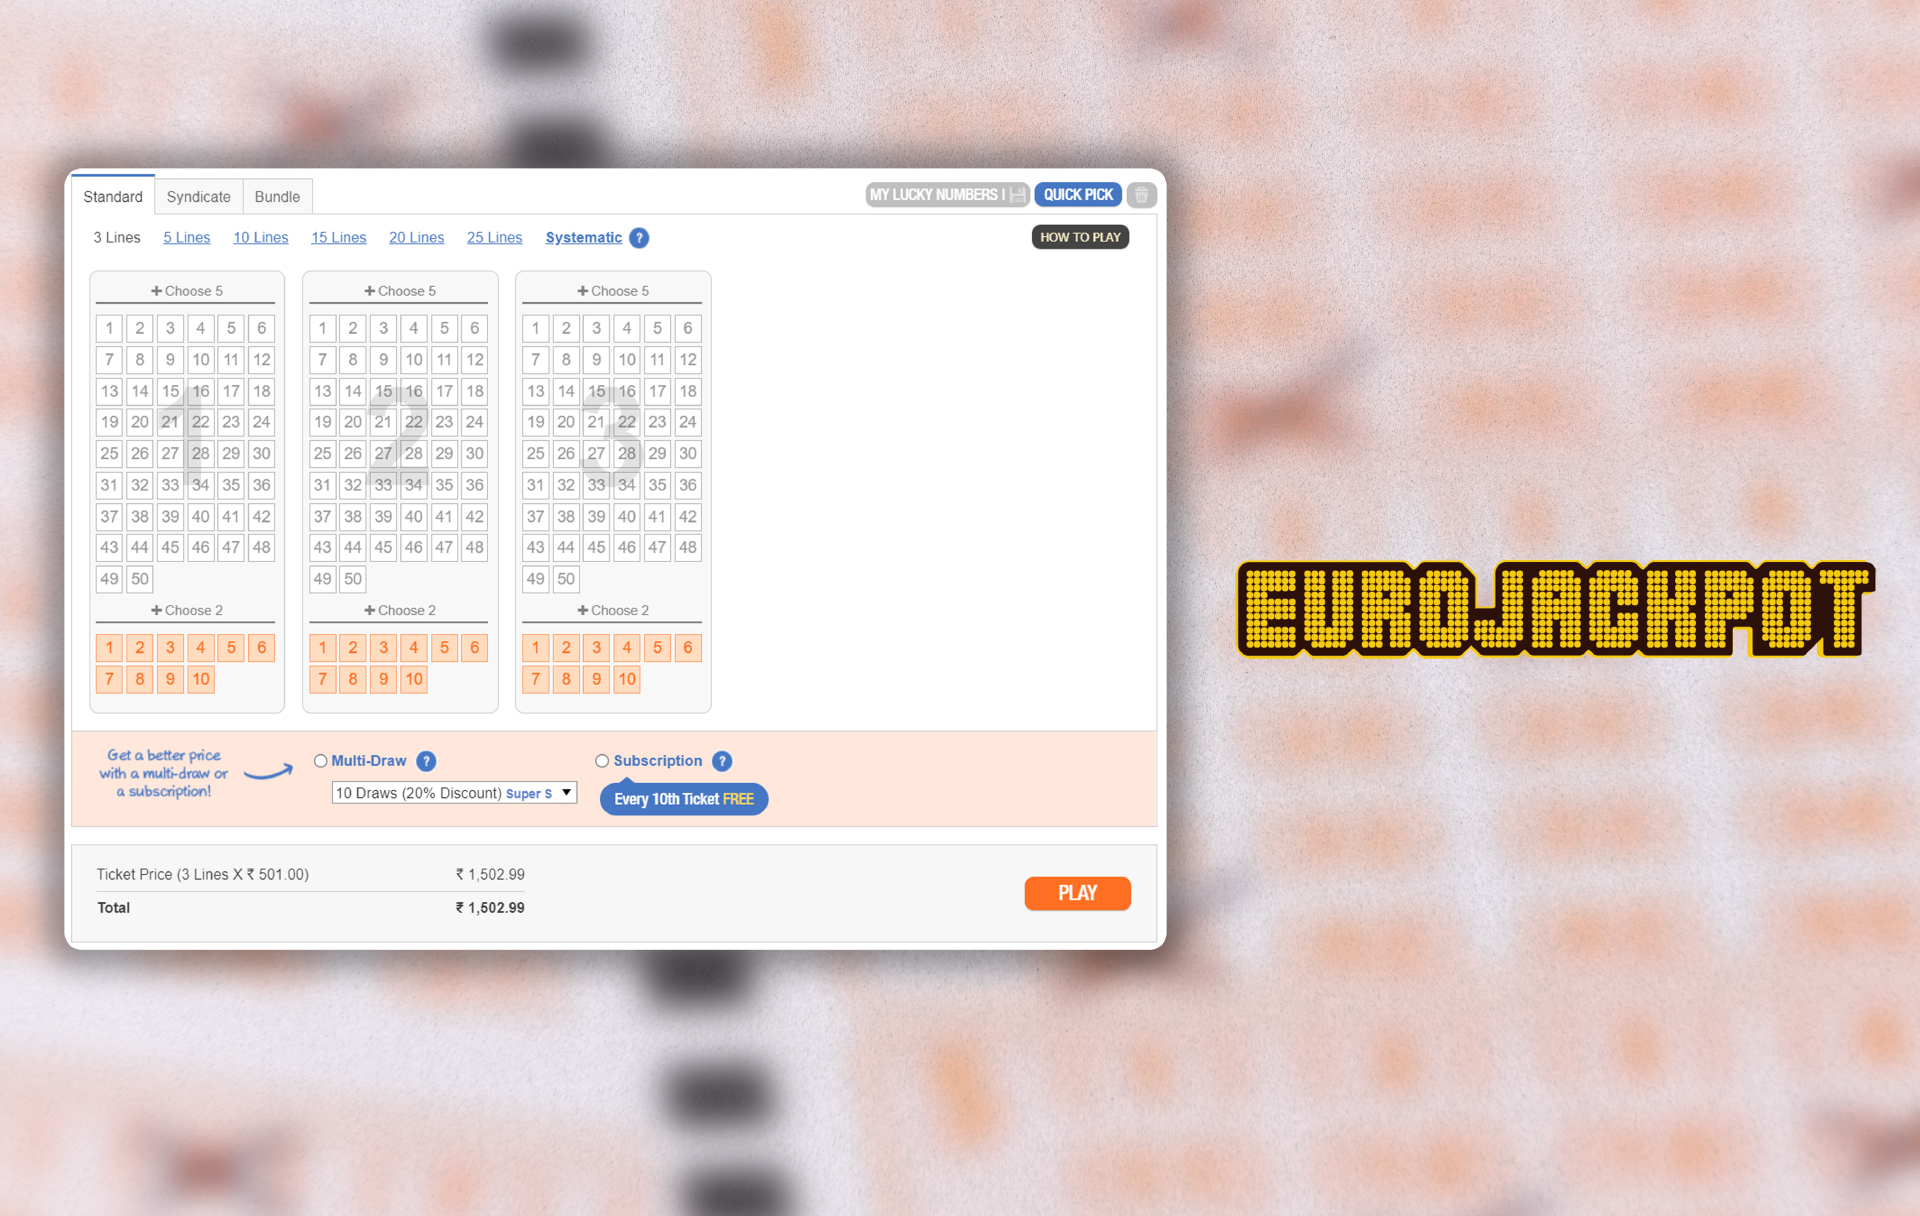 EuroJackpot is held in 9 countries of Europe but you can buy the ticket via TheLotter site from India as well.